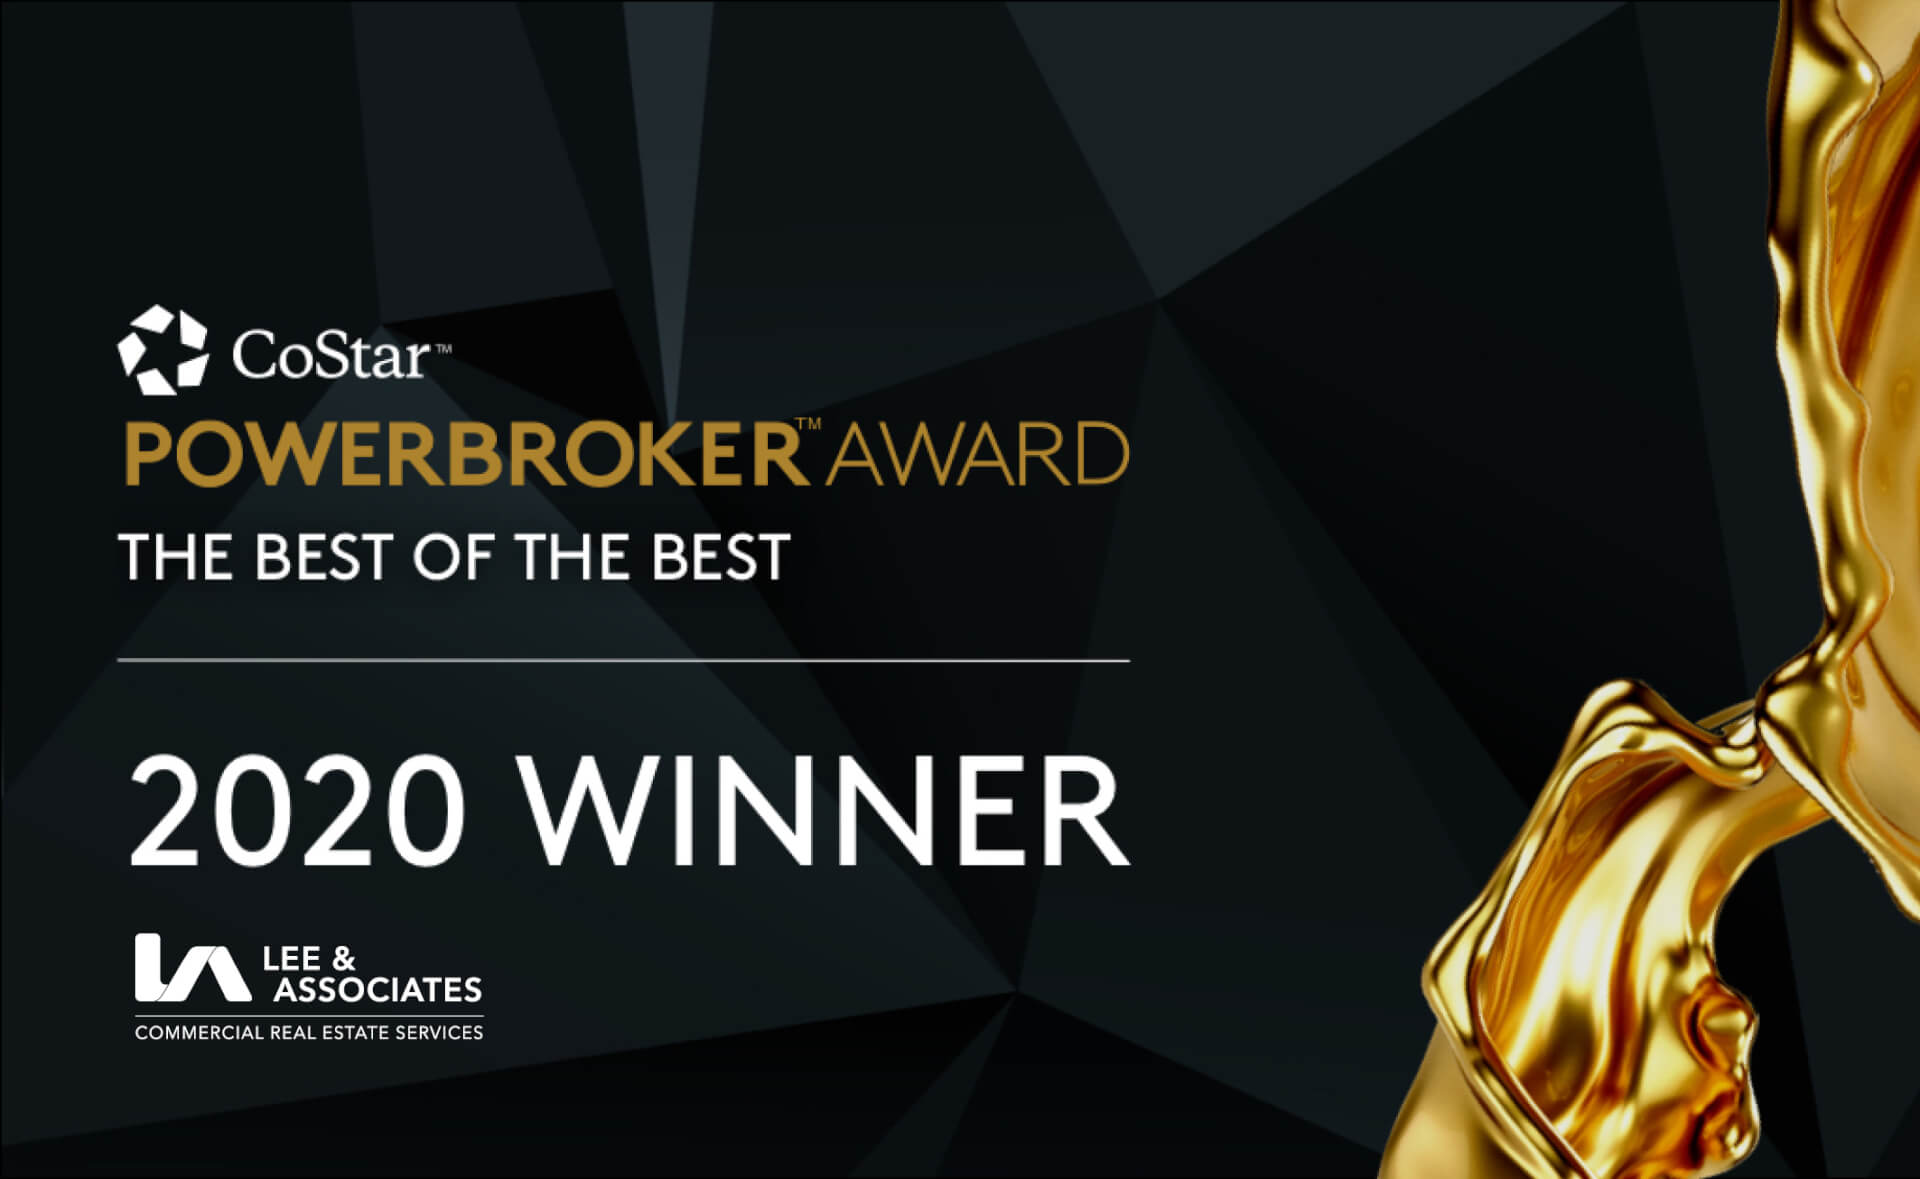 Lee & Associates Receives 2020 Power Broker Awards